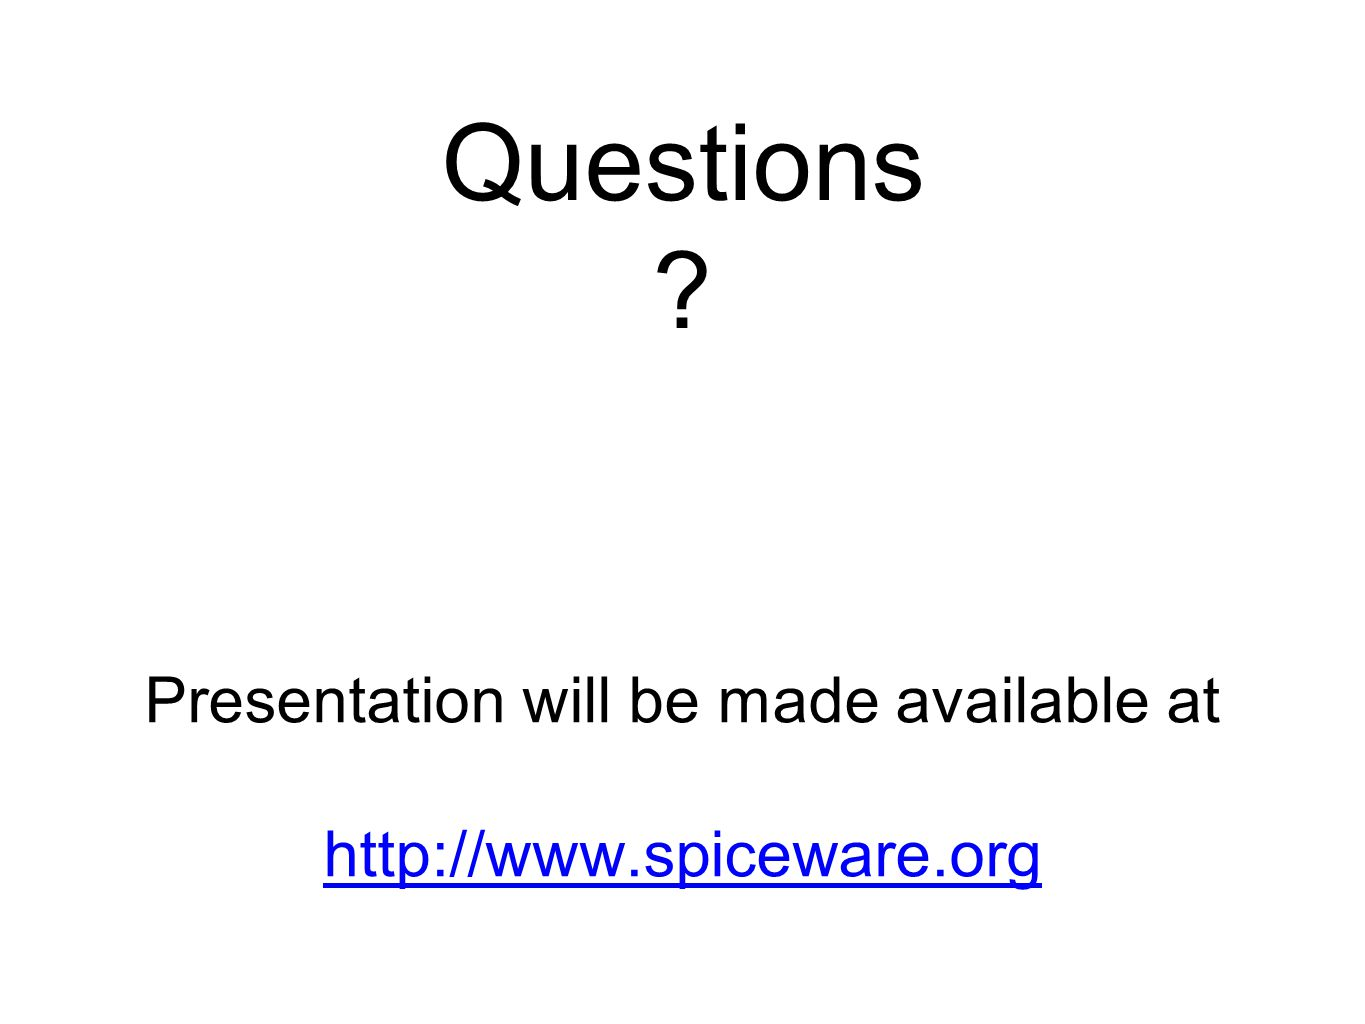 Presentation will be made available at http://www.spiceware.org